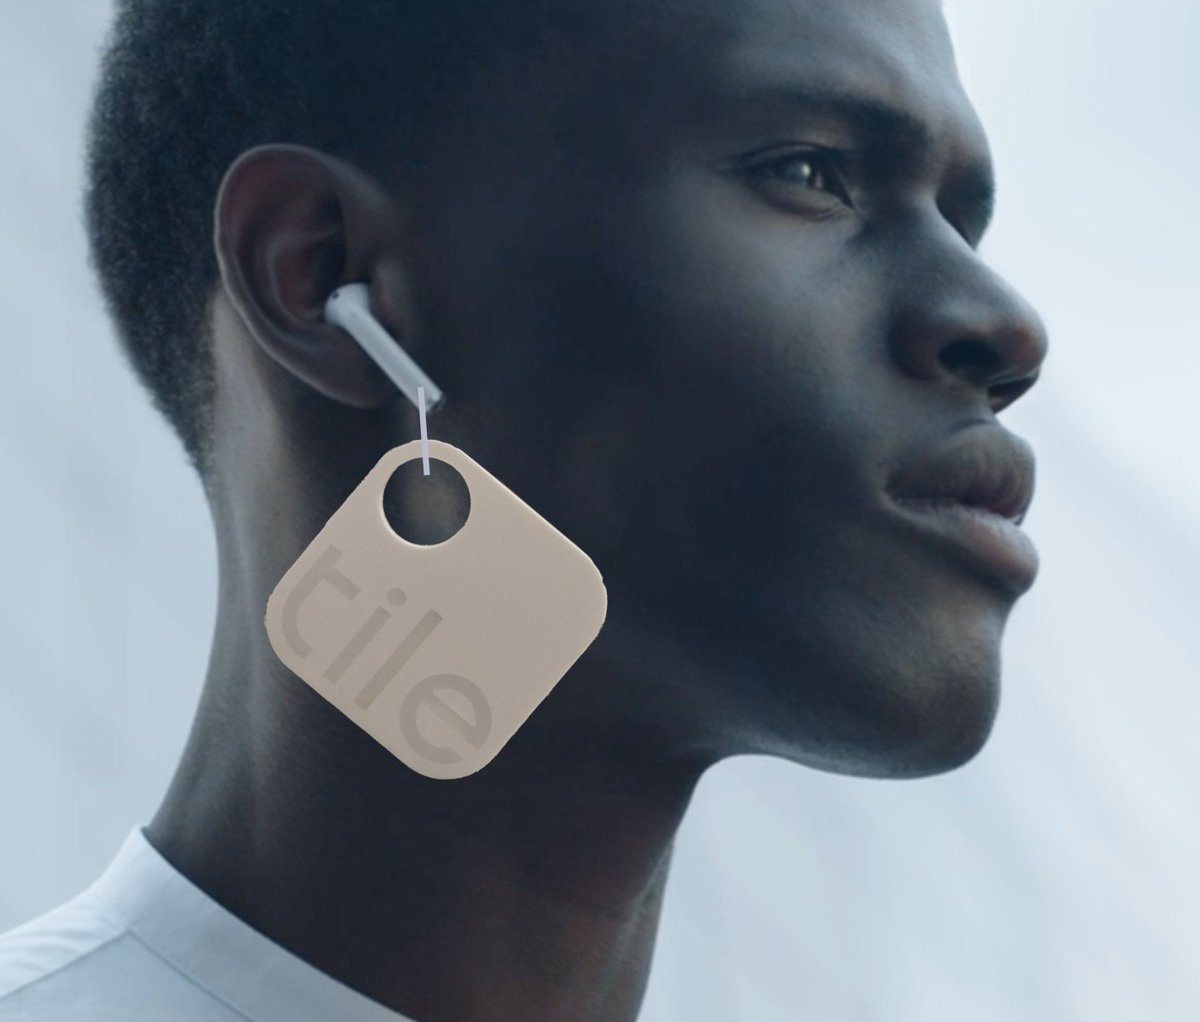 A new fashion that will emerge in the era of $159 ear buds. https://t.co/EV94fxn4AA